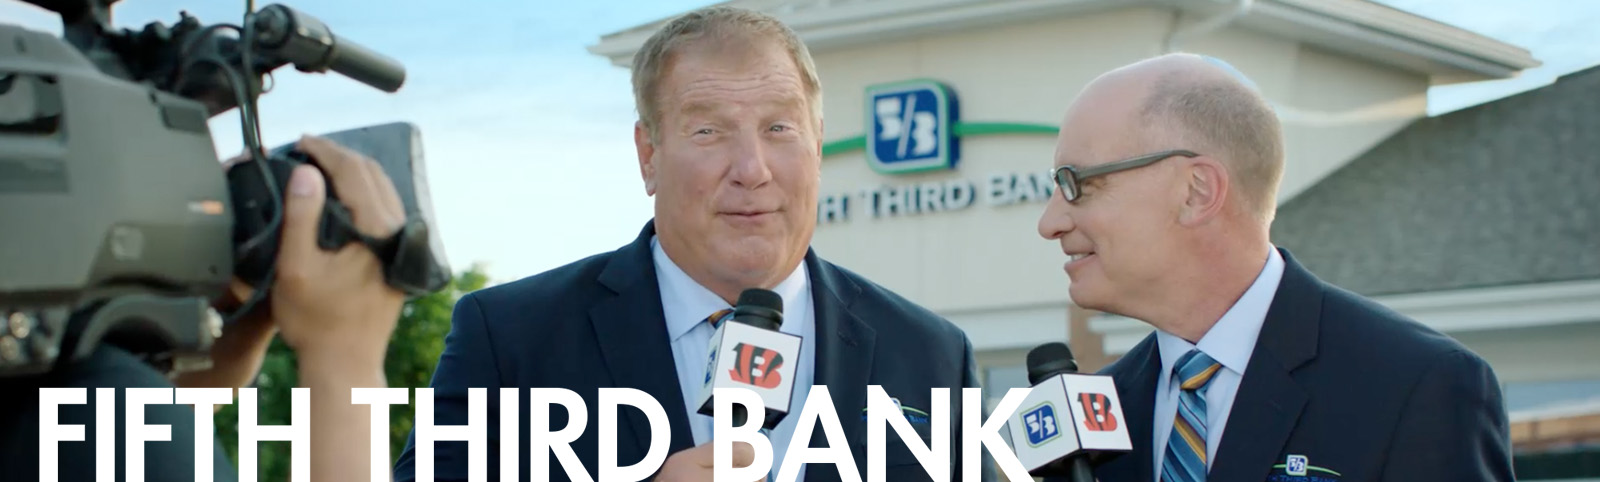 Fifth Third Bank Bengals Checking